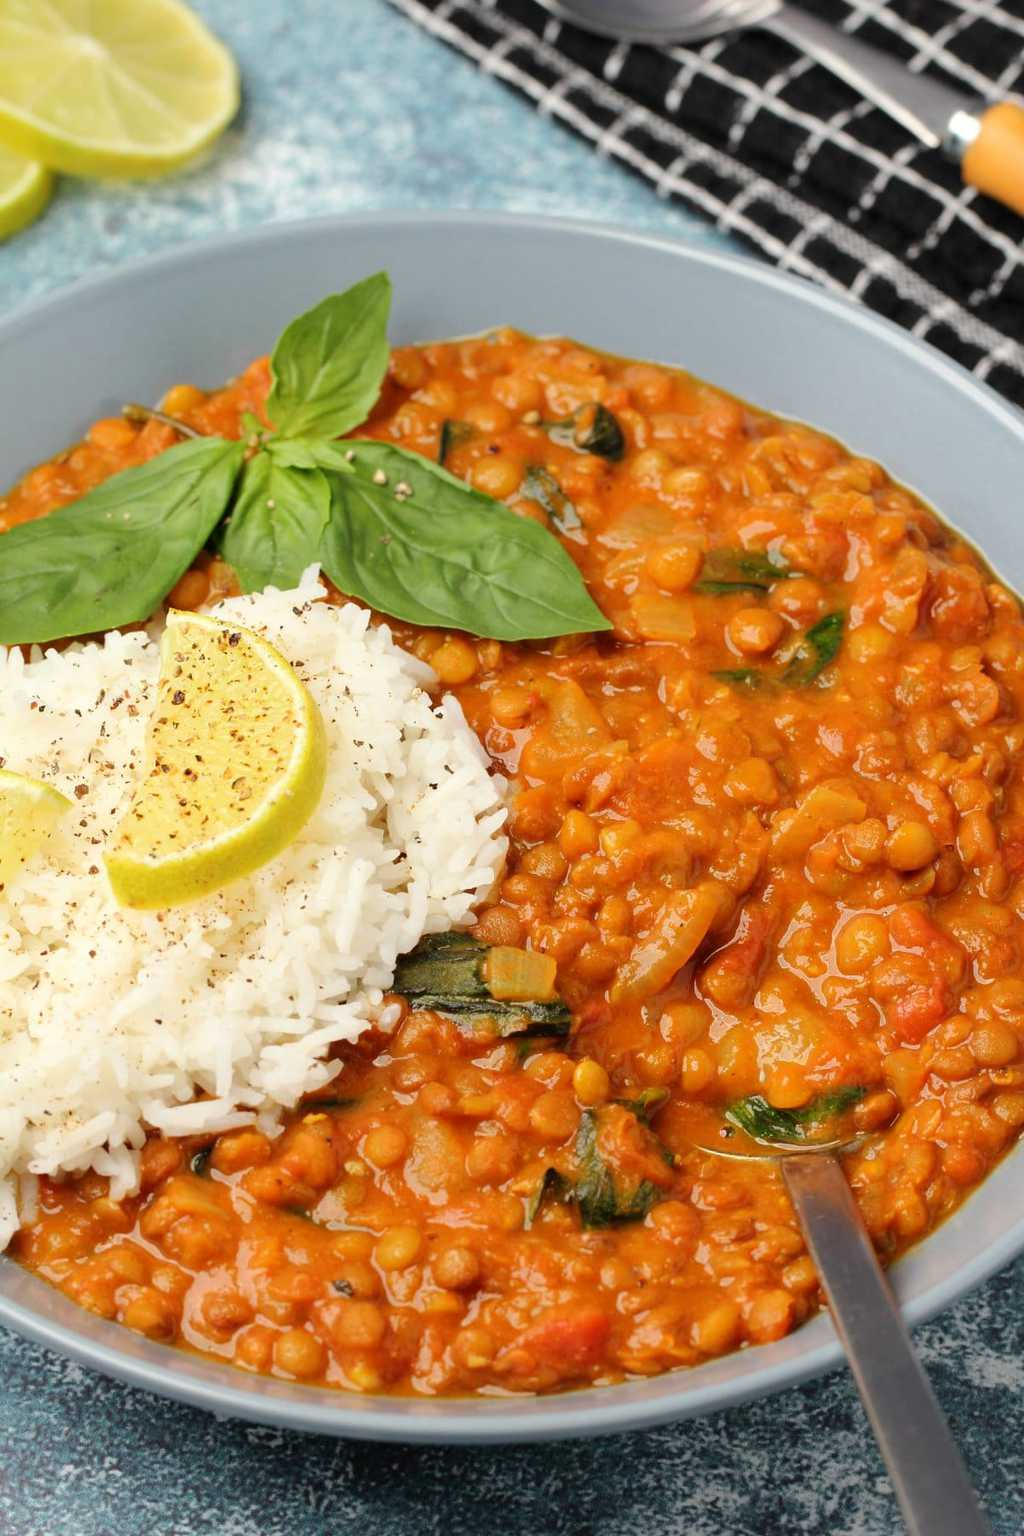 Vegan lentil curry with basmati rice and fresh basil in a blue bowl.